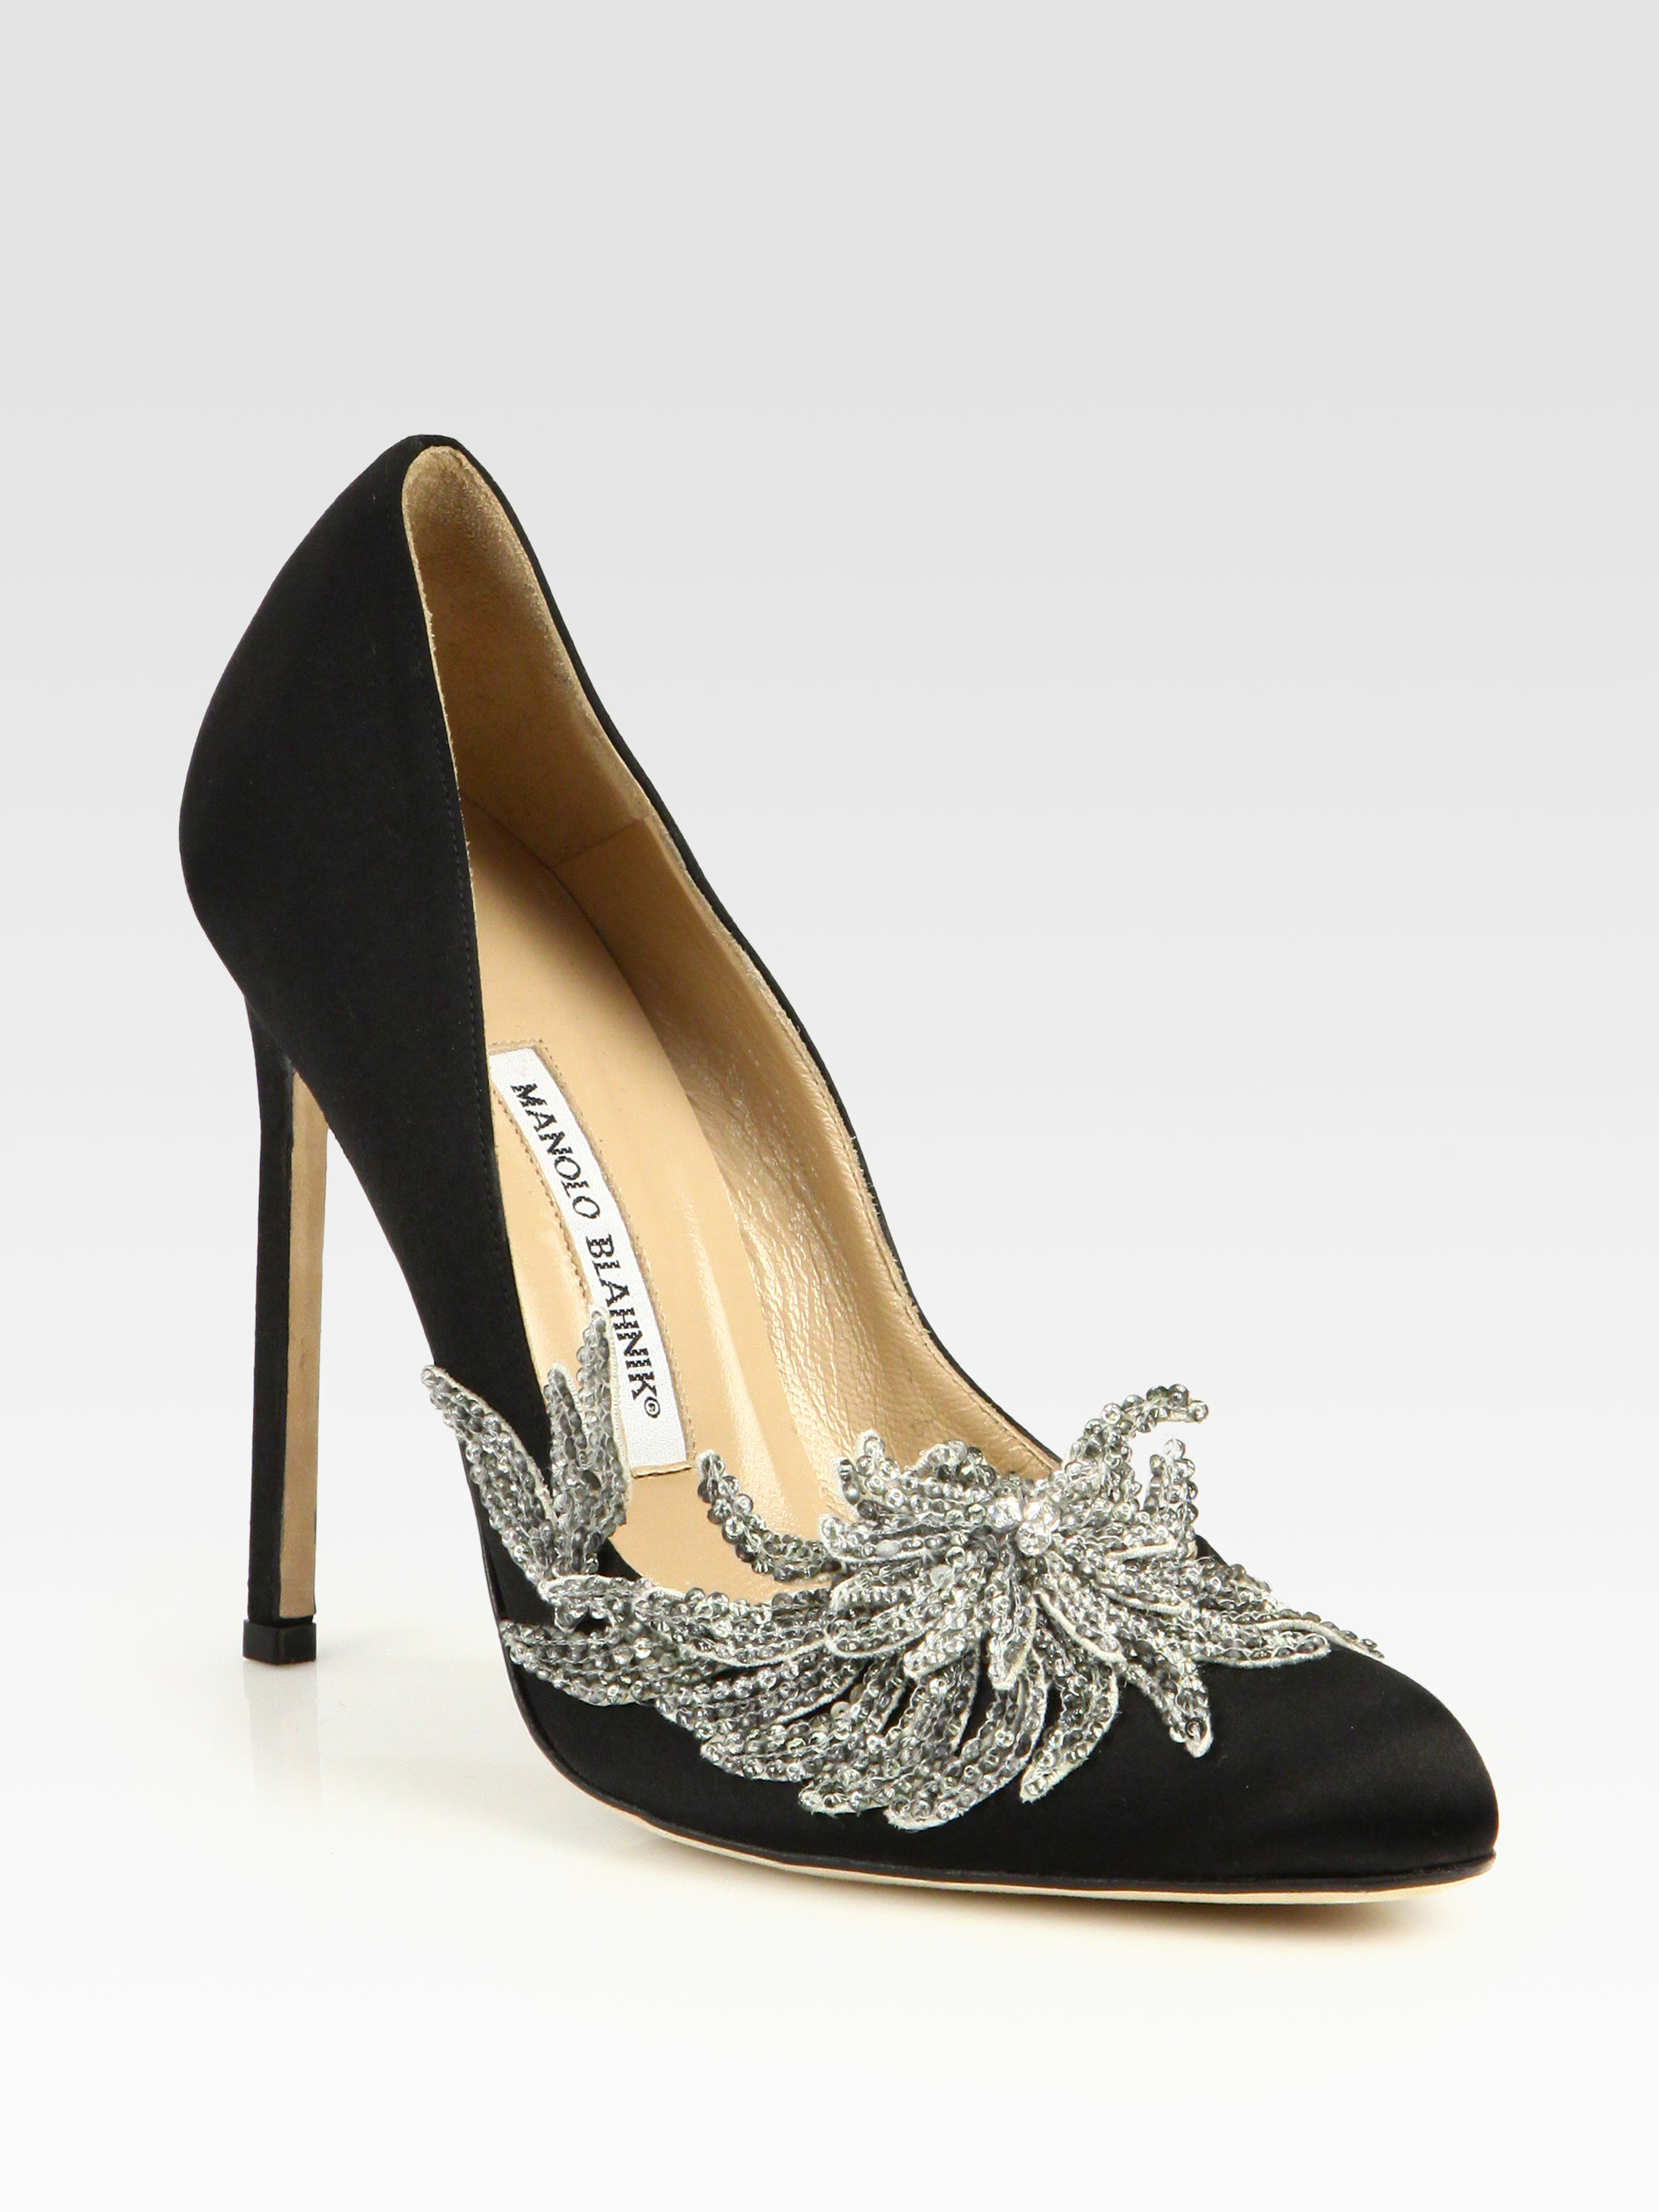 manolo blahnik shoes pictures